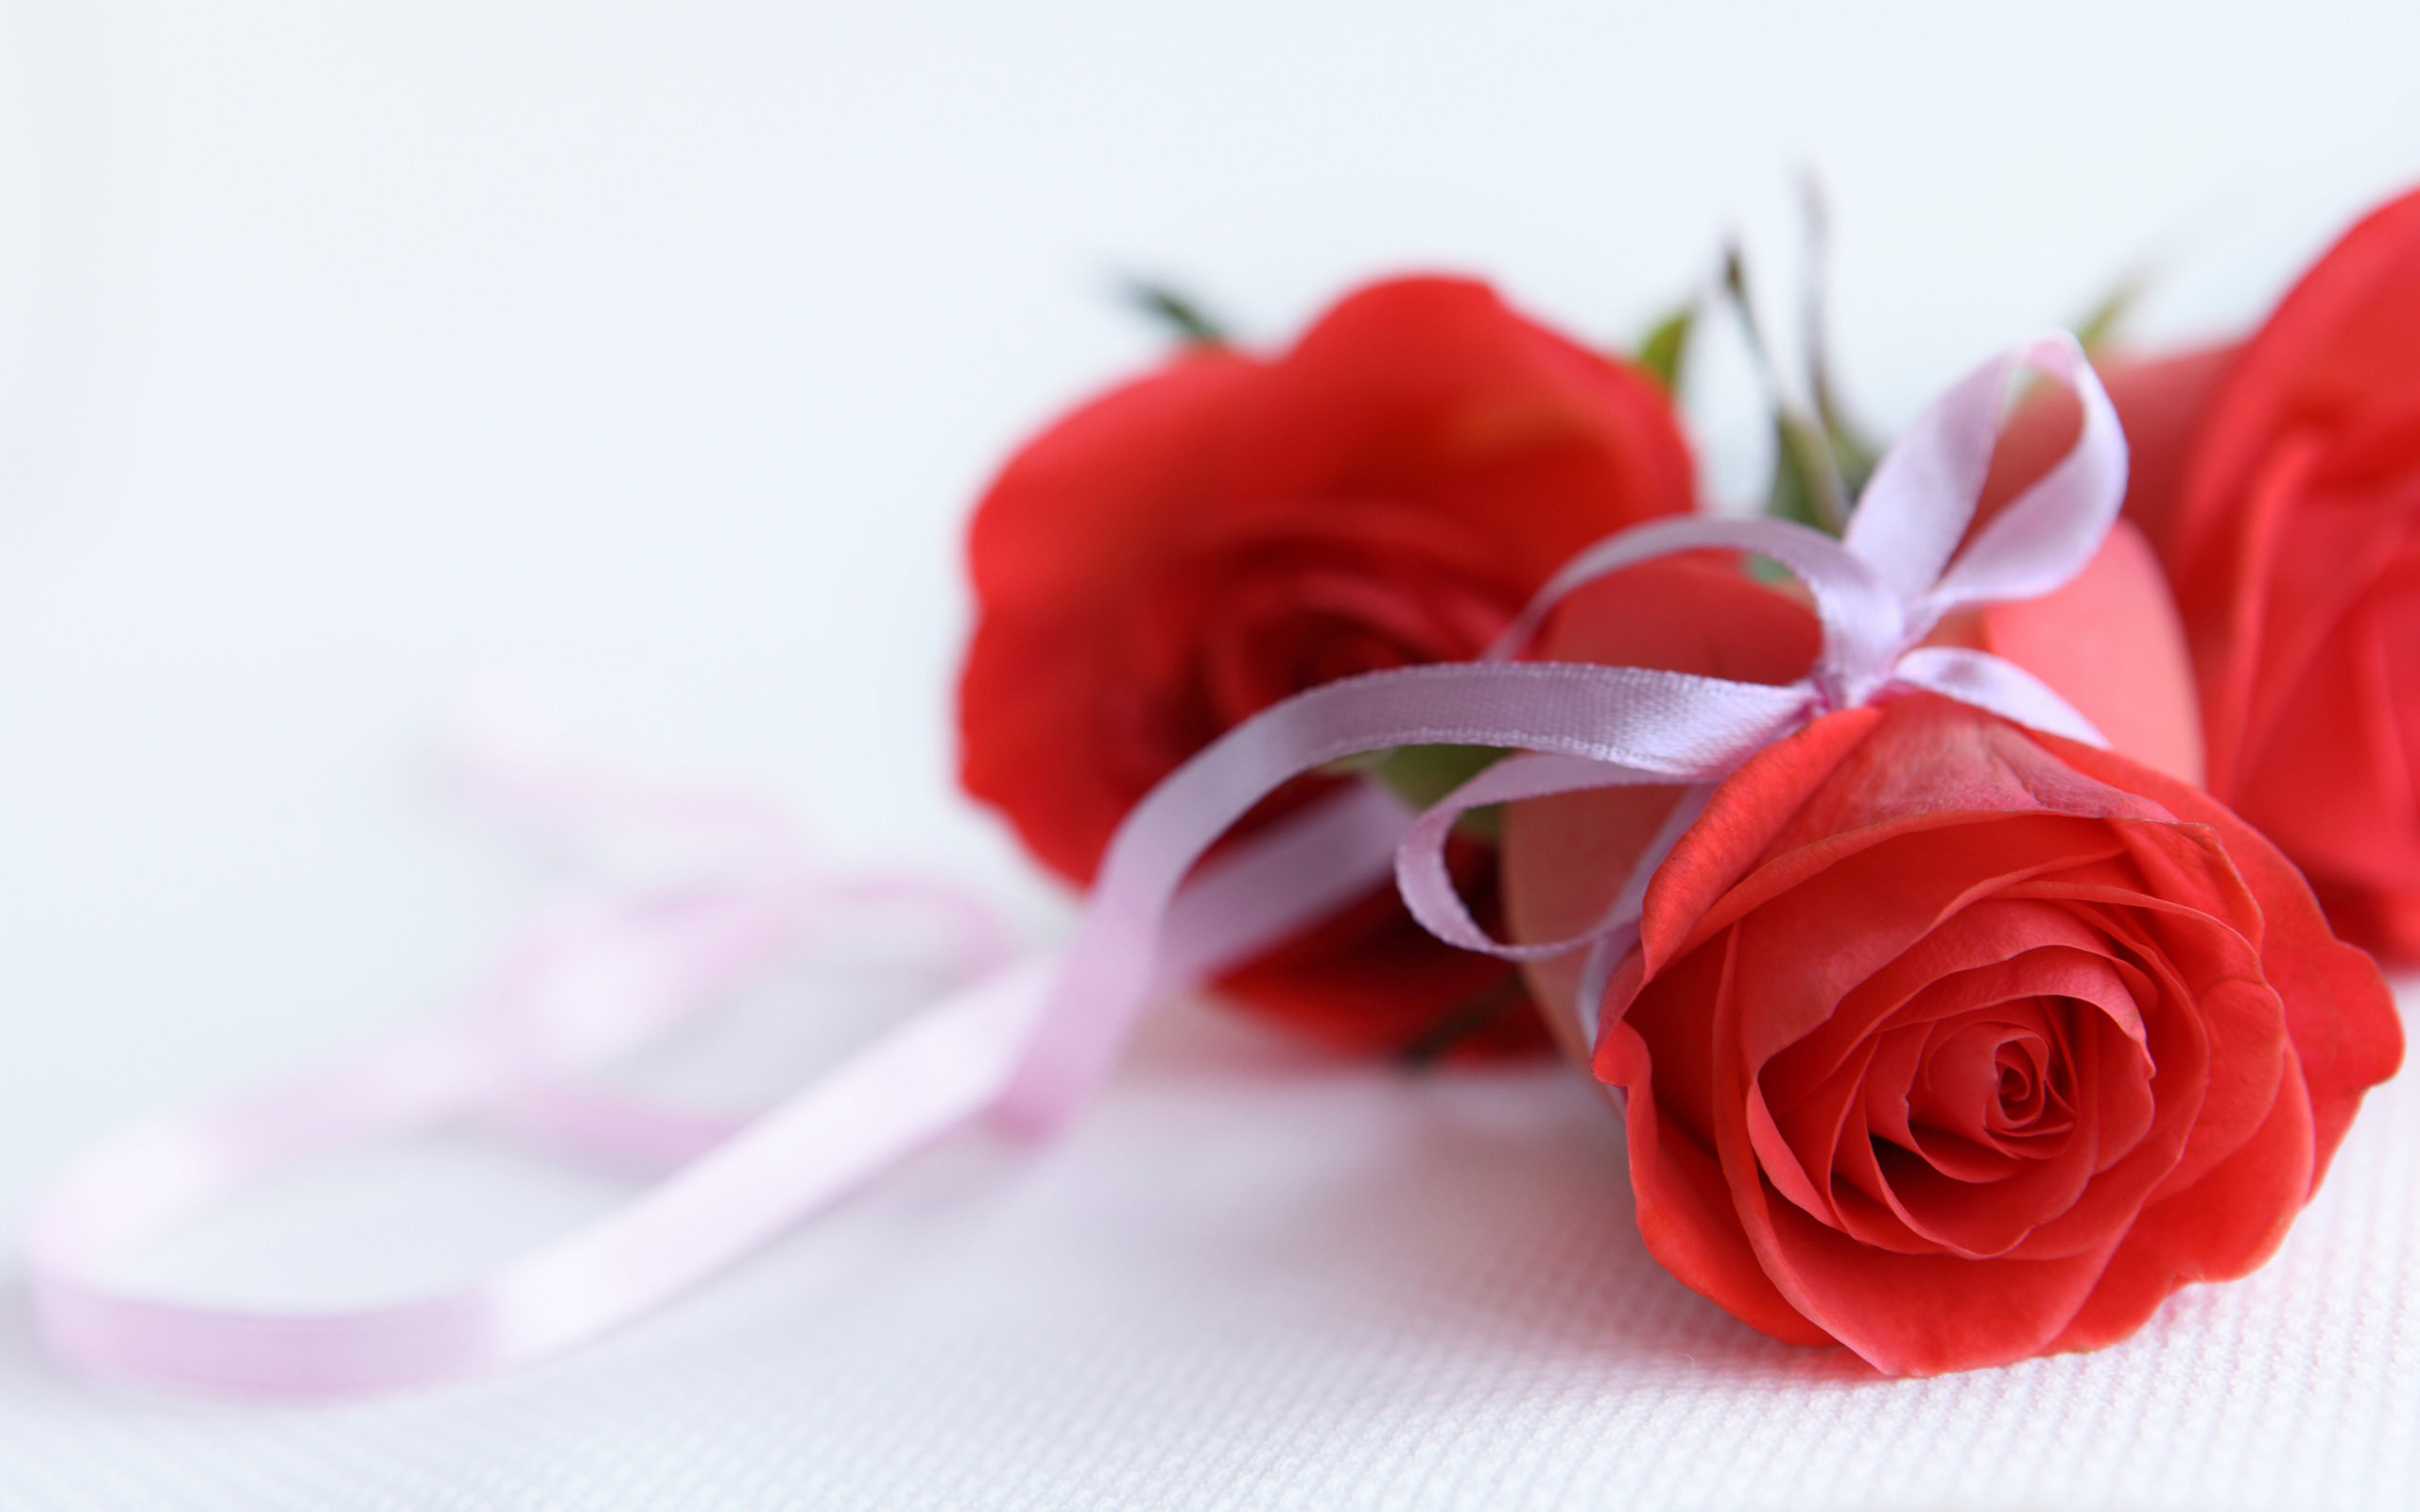 Rose Flower Images Wallpapers (55+ images)